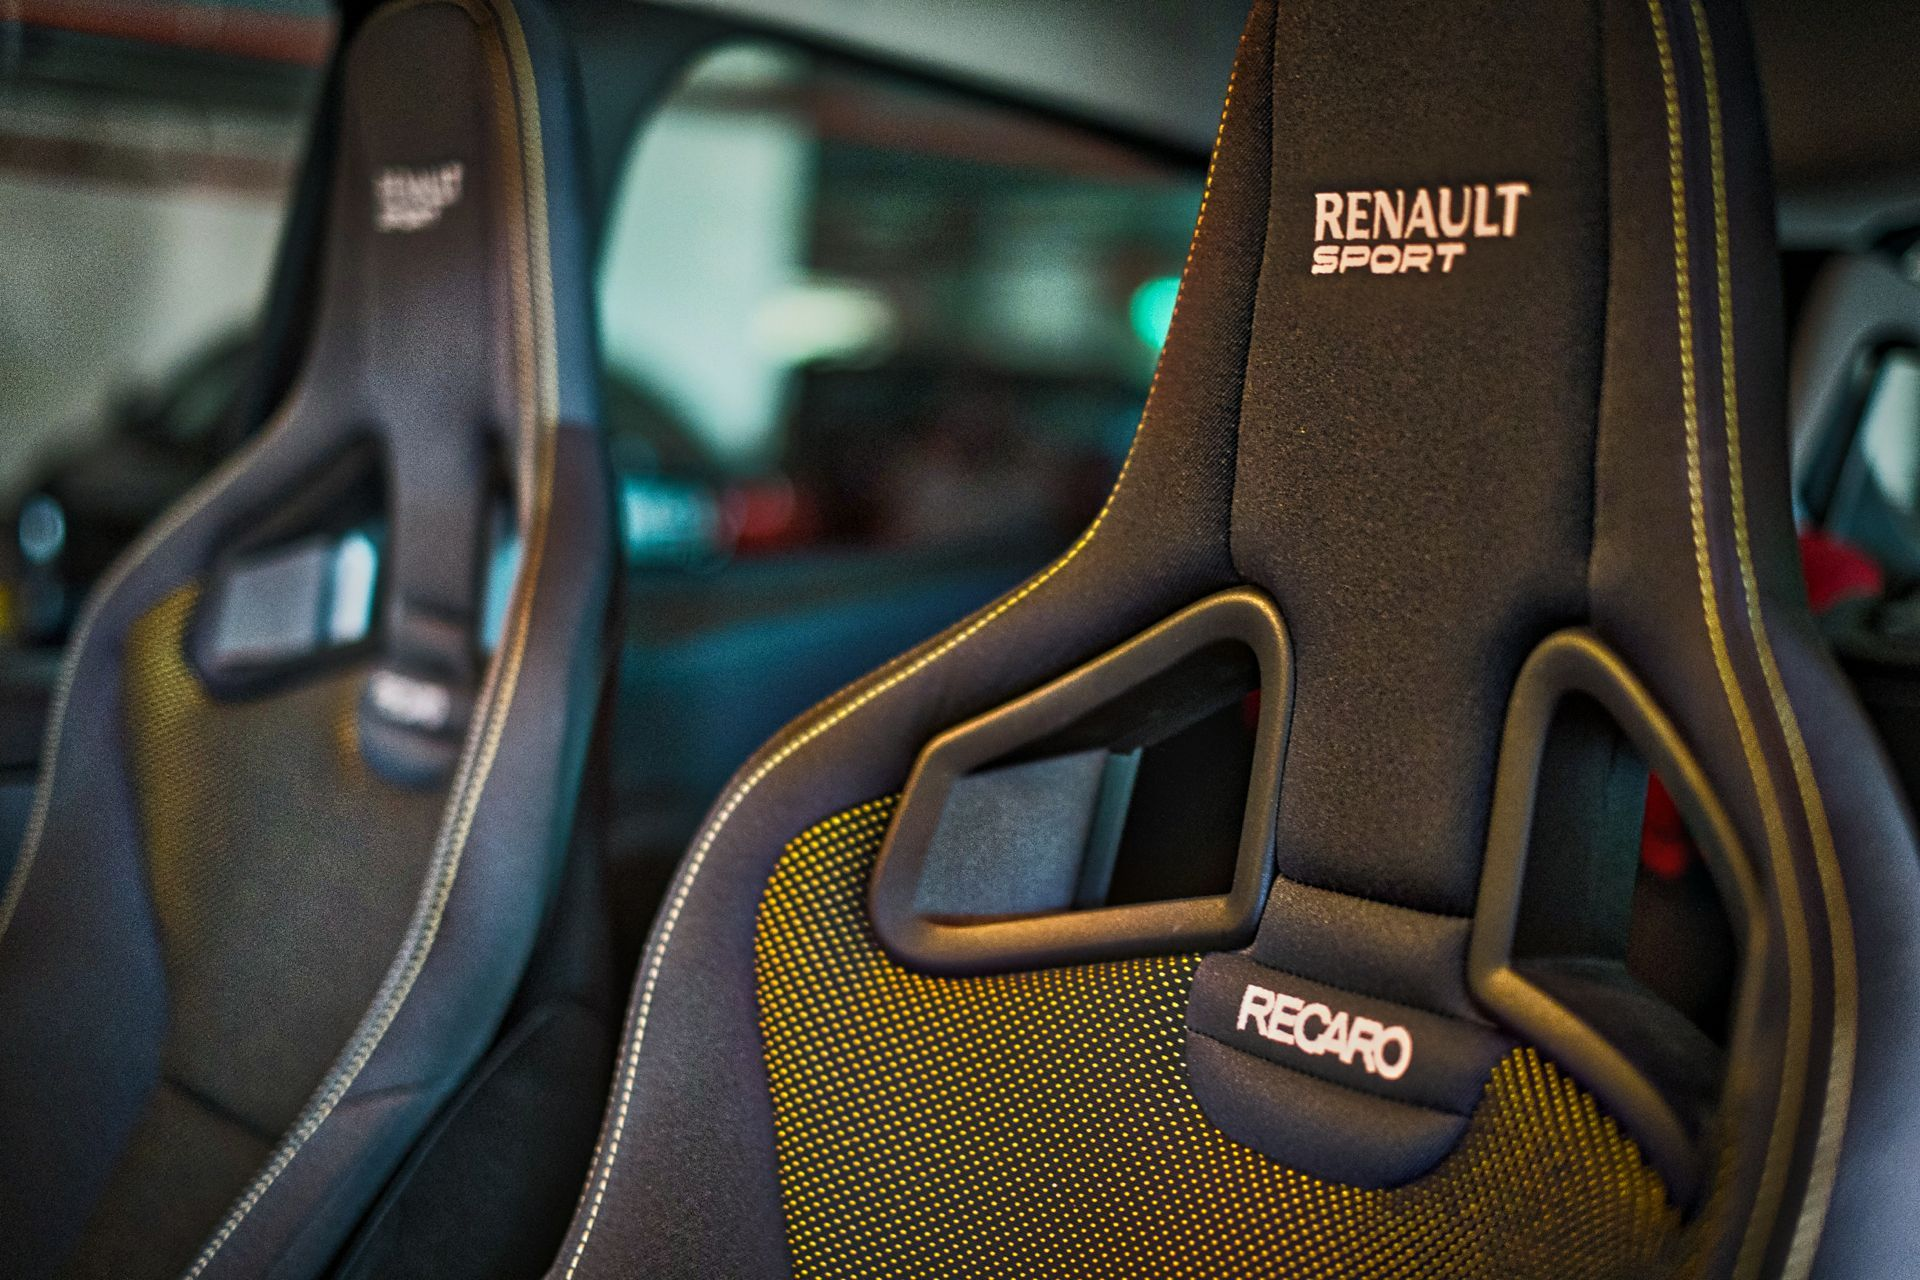 Renault Clio Rs S Recaro Seats Are Spectacular Watchlist